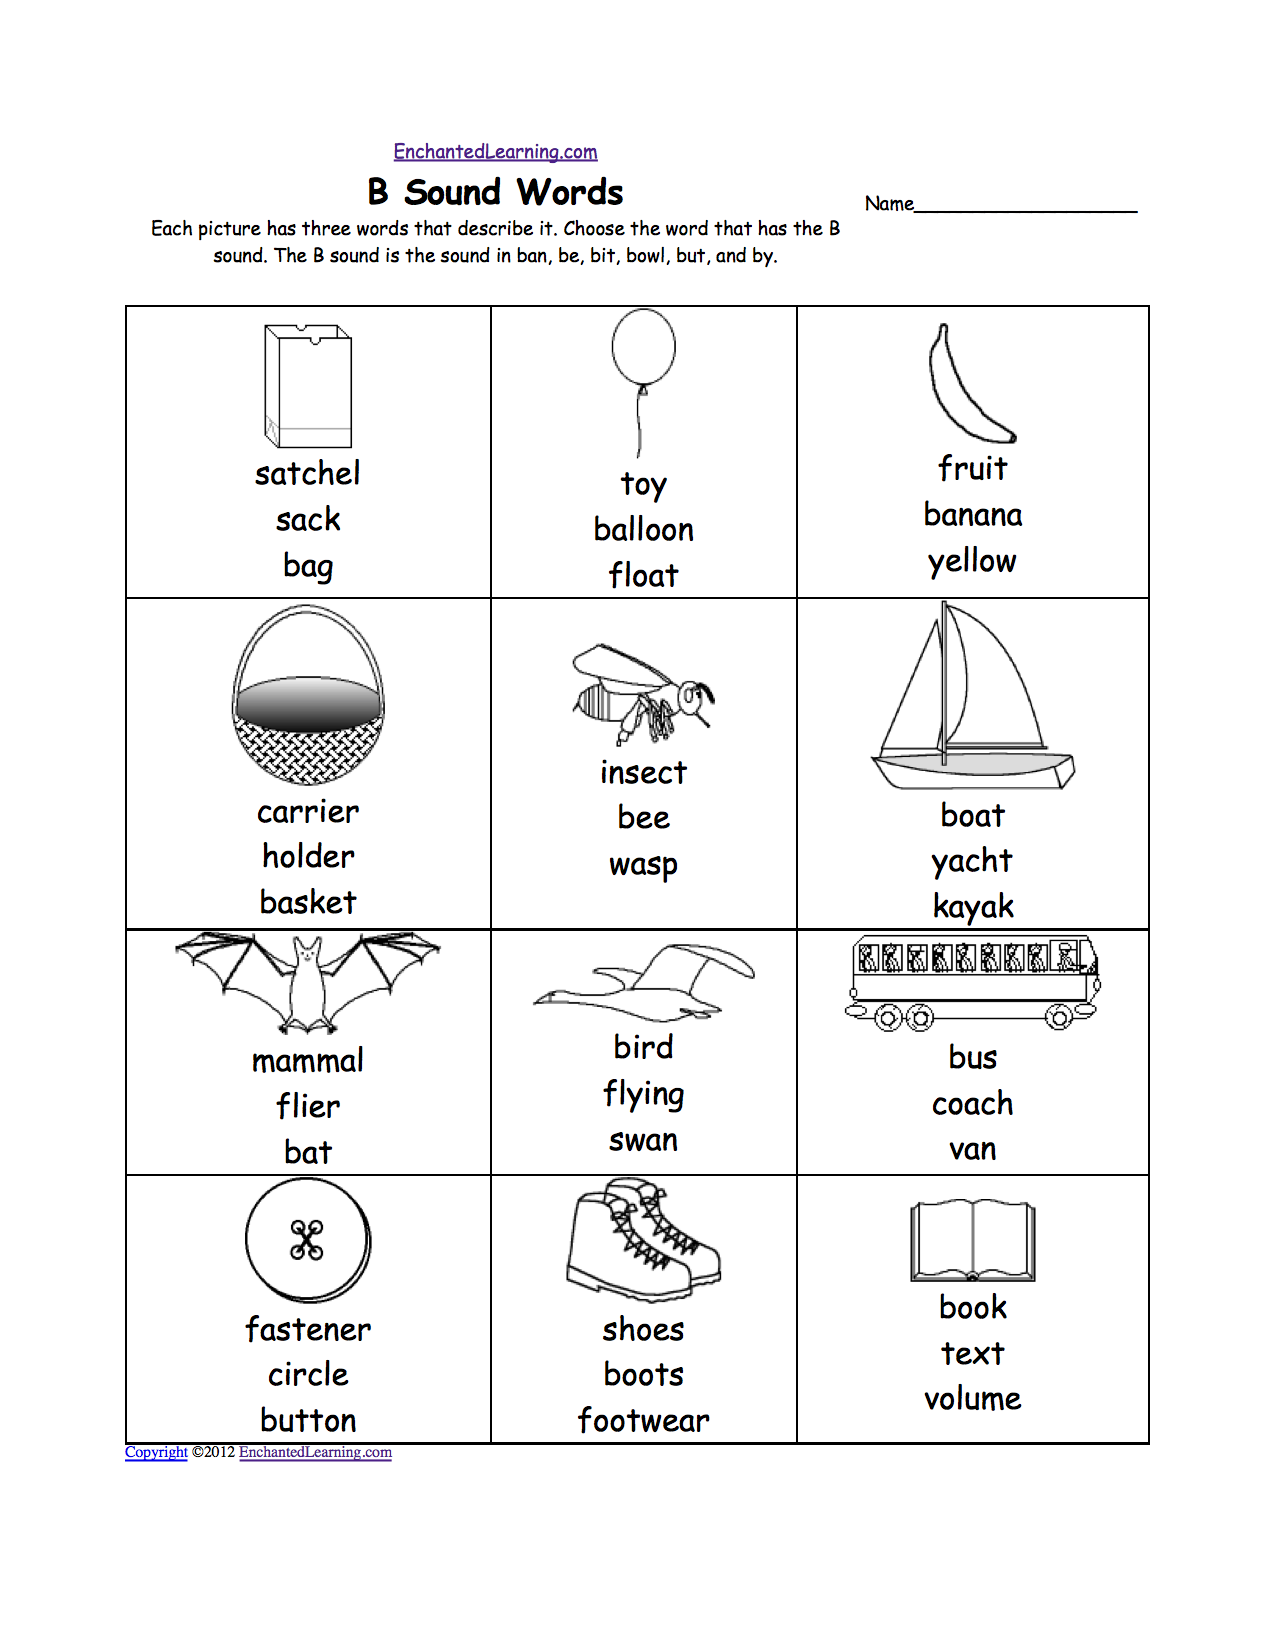 Weirdmailus  Sweet Phonics Worksheets Multiple Choice Worksheets To Print  With Foxy Quotbquot Sound Phonics Worksheet Multiple Choice Each Picture Has Three Words That Describe It Choose The Word That Has A Quotbquot Sound The Quotbquot Sound Is The Sound  With Enchanting Free Math Graphing Worksheets Also Money Place Value Worksheets In Addition Pattern Worksheets Grade  And Multiplication Worksheet For Grade  As Well As Idioms Worksheets For Grade  Additionally Pie Chart Worksheets Ks From Enchantedlearningcom With Weirdmailus  Foxy Phonics Worksheets Multiple Choice Worksheets To Print  With Enchanting Quotbquot Sound Phonics Worksheet Multiple Choice Each Picture Has Three Words That Describe It Choose The Word That Has A Quotbquot Sound The Quotbquot Sound Is The Sound  And Sweet Free Math Graphing Worksheets Also Money Place Value Worksheets In Addition Pattern Worksheets Grade  From Enchantedlearningcom